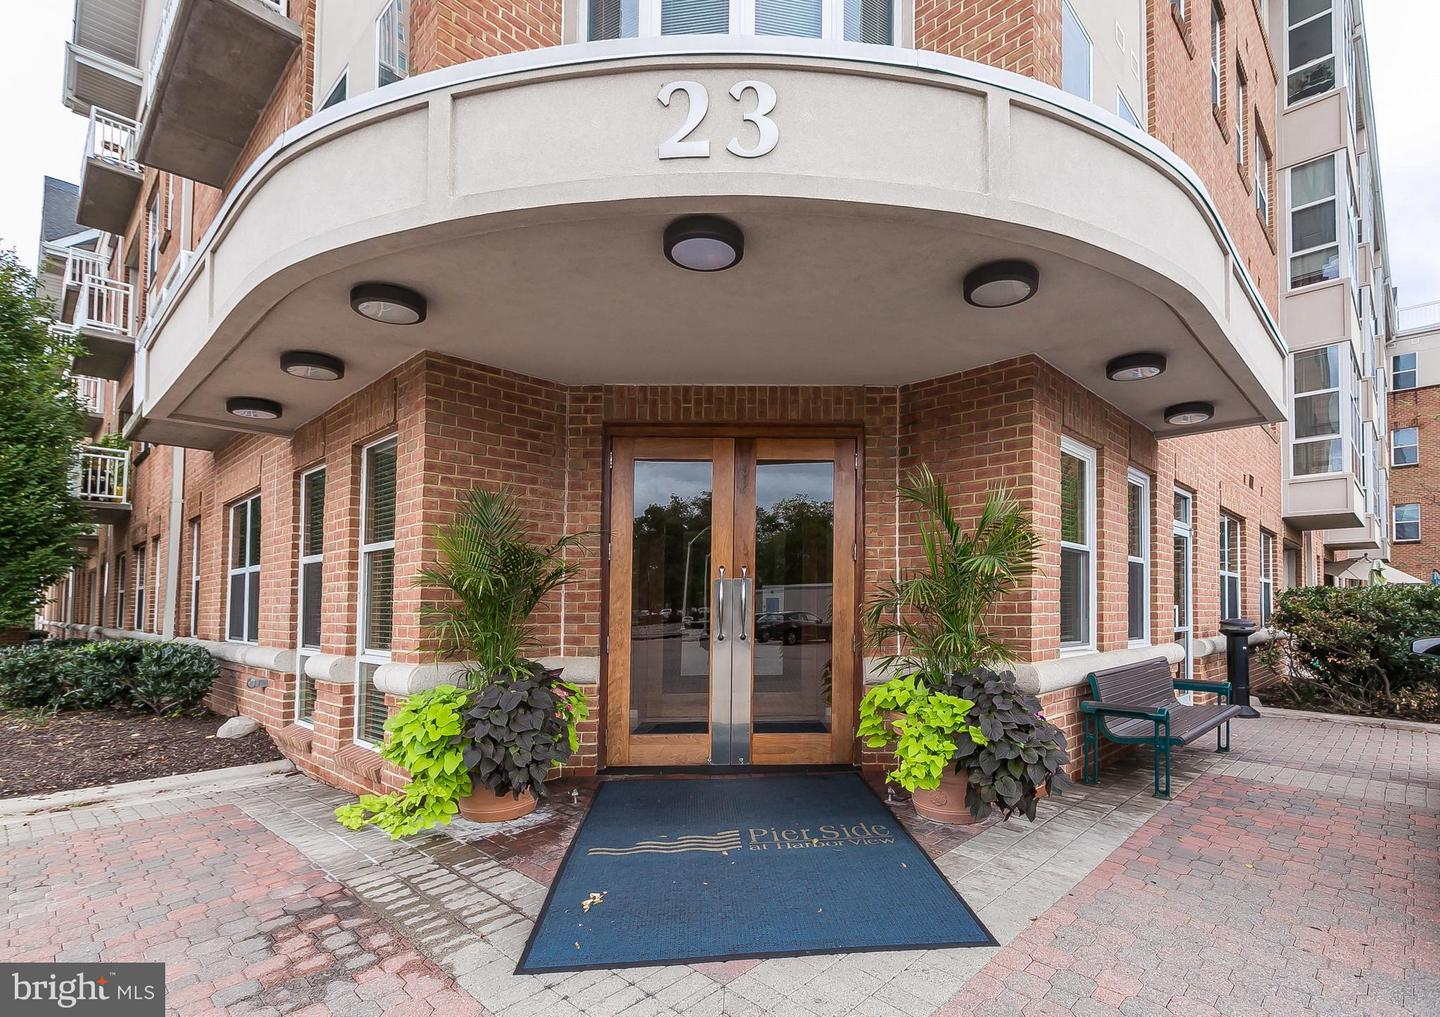 Other Residential for Rent at 23 Pierside Dr #219 Baltimore, Maryland 21230 United States